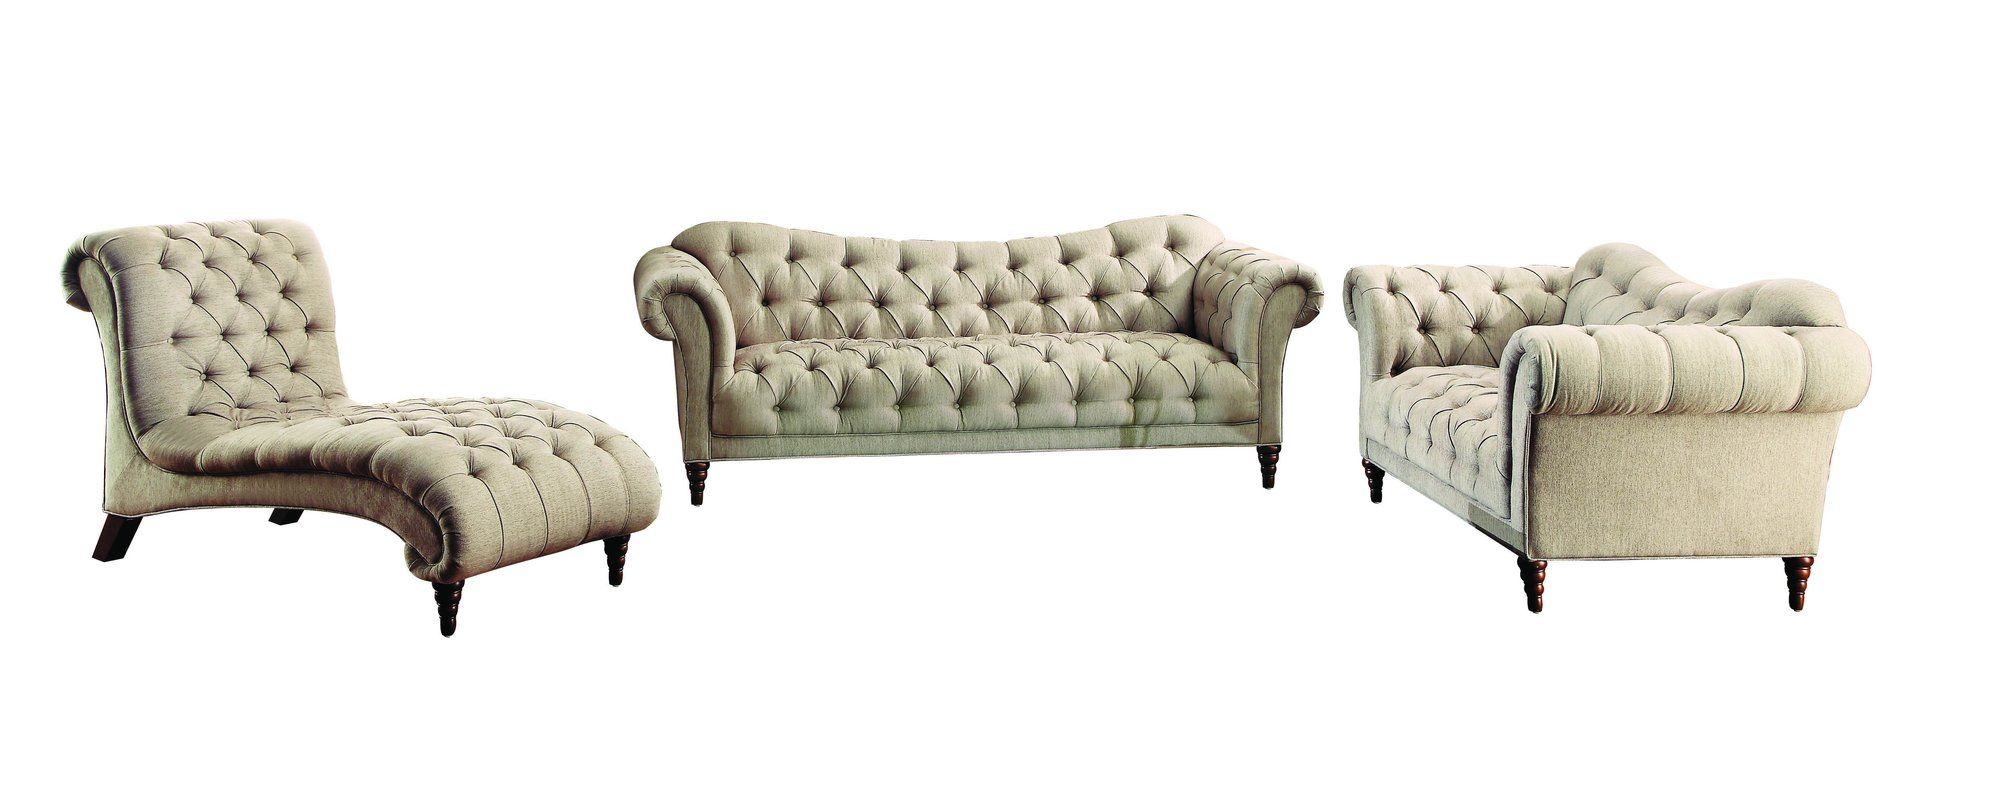 Barlow White Leather Sofa And Loveseat Set Burna Sofa Architectural Sofa Chesterfield Chair Accent Chairs